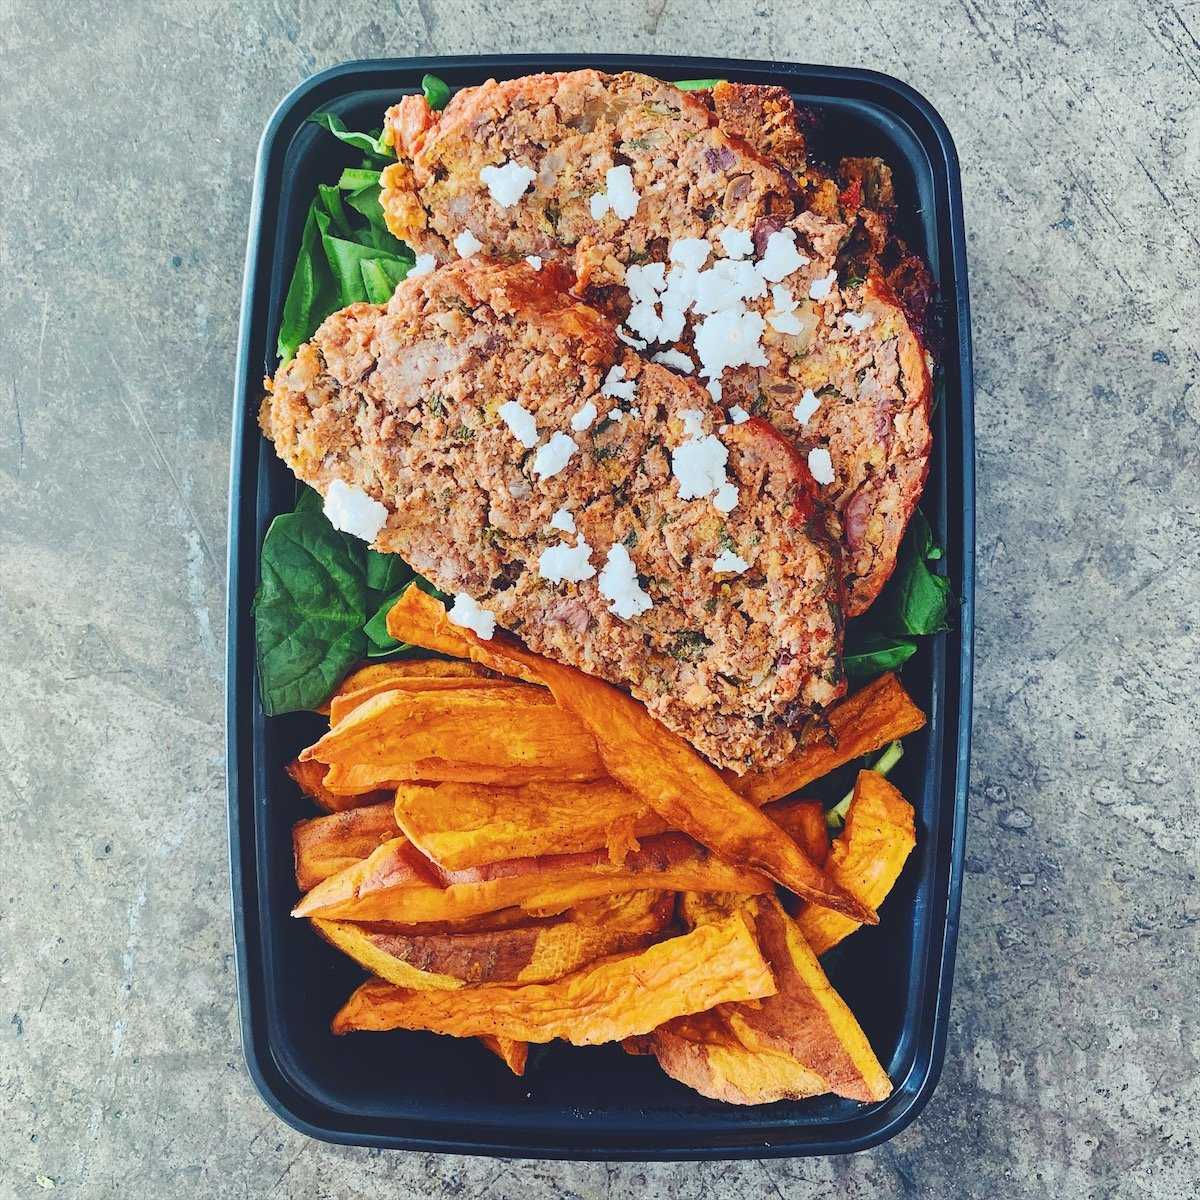 MEATLOAF AND FRIES | REFUL.CO